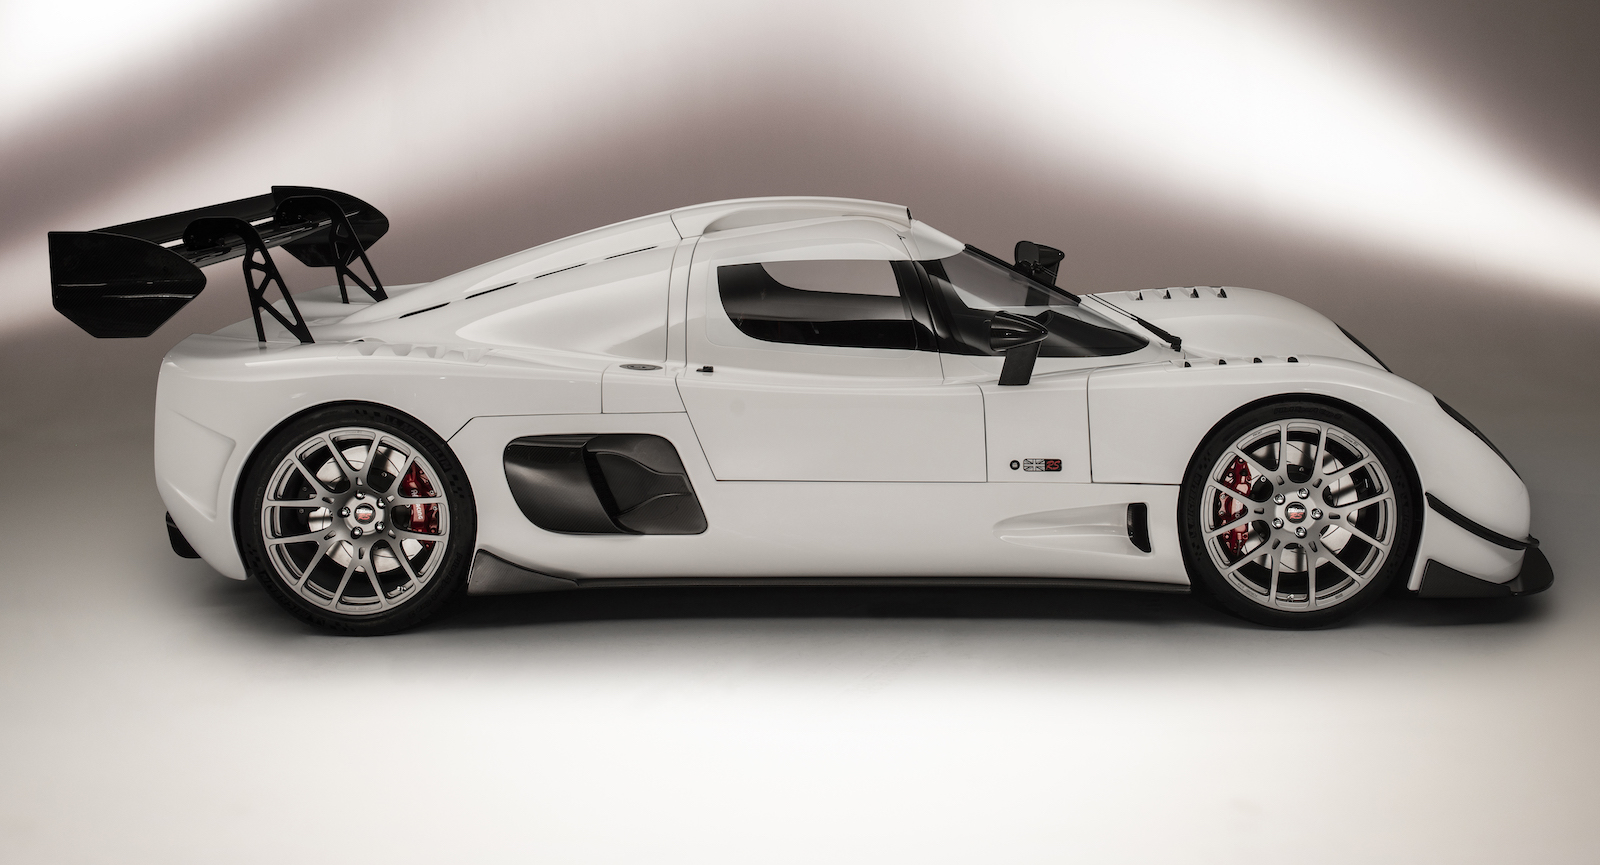 New Ultima Rs Supercar Is A 1 200 Hp Stick Shift Track